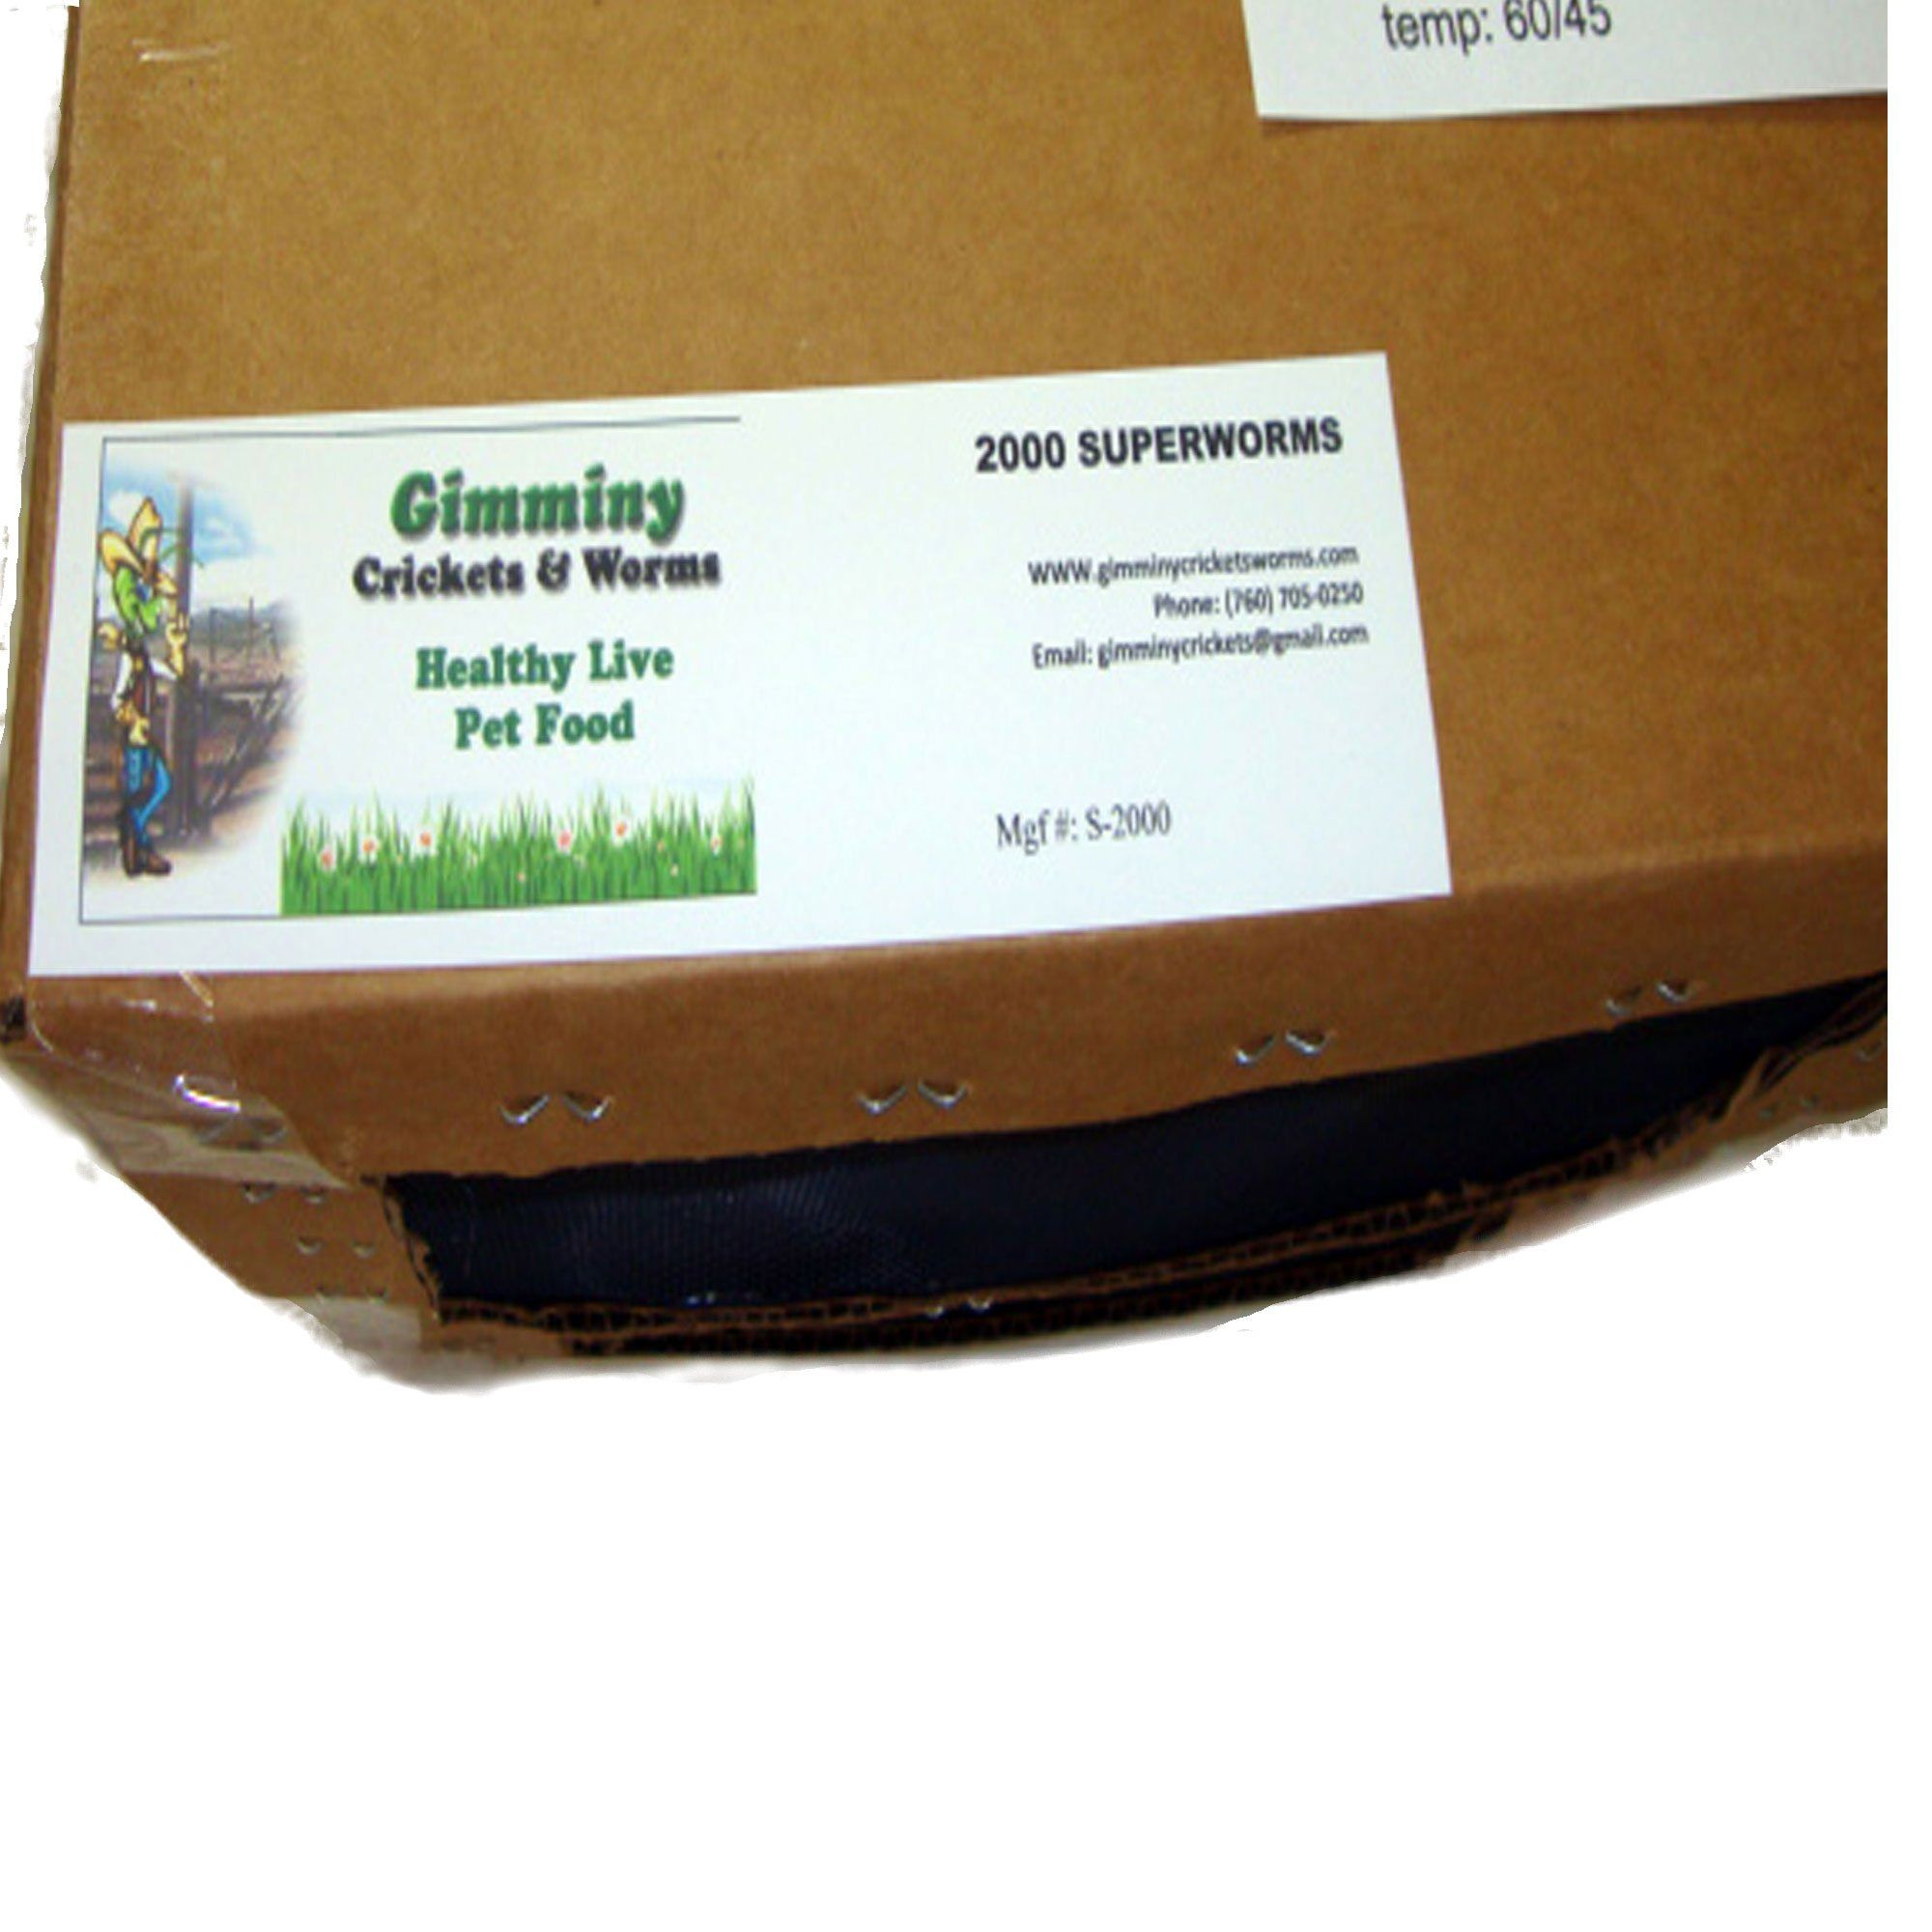 2100 Live Mealworms Organically Grown By Gimminy Crickets Food Animals Reptile Food Cricket